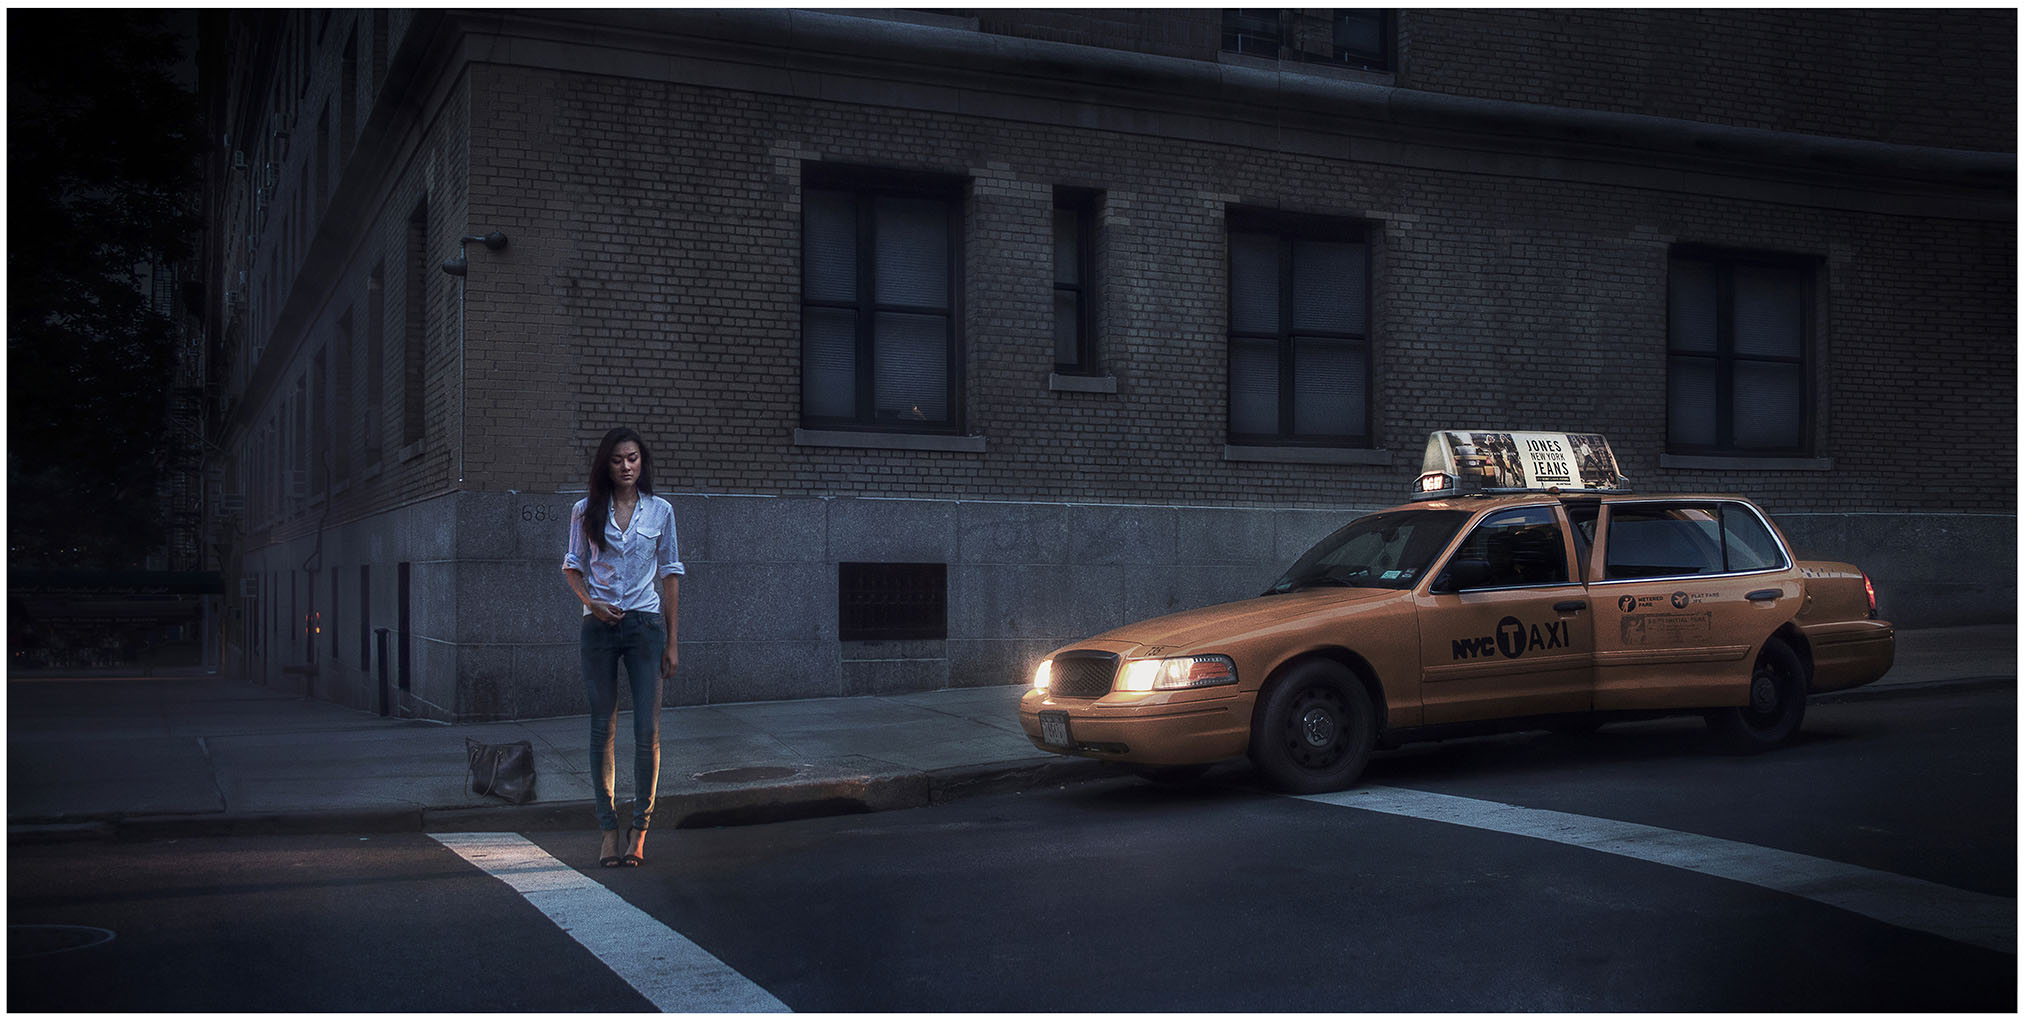 Lost in New York - Julien Dumas Photographe